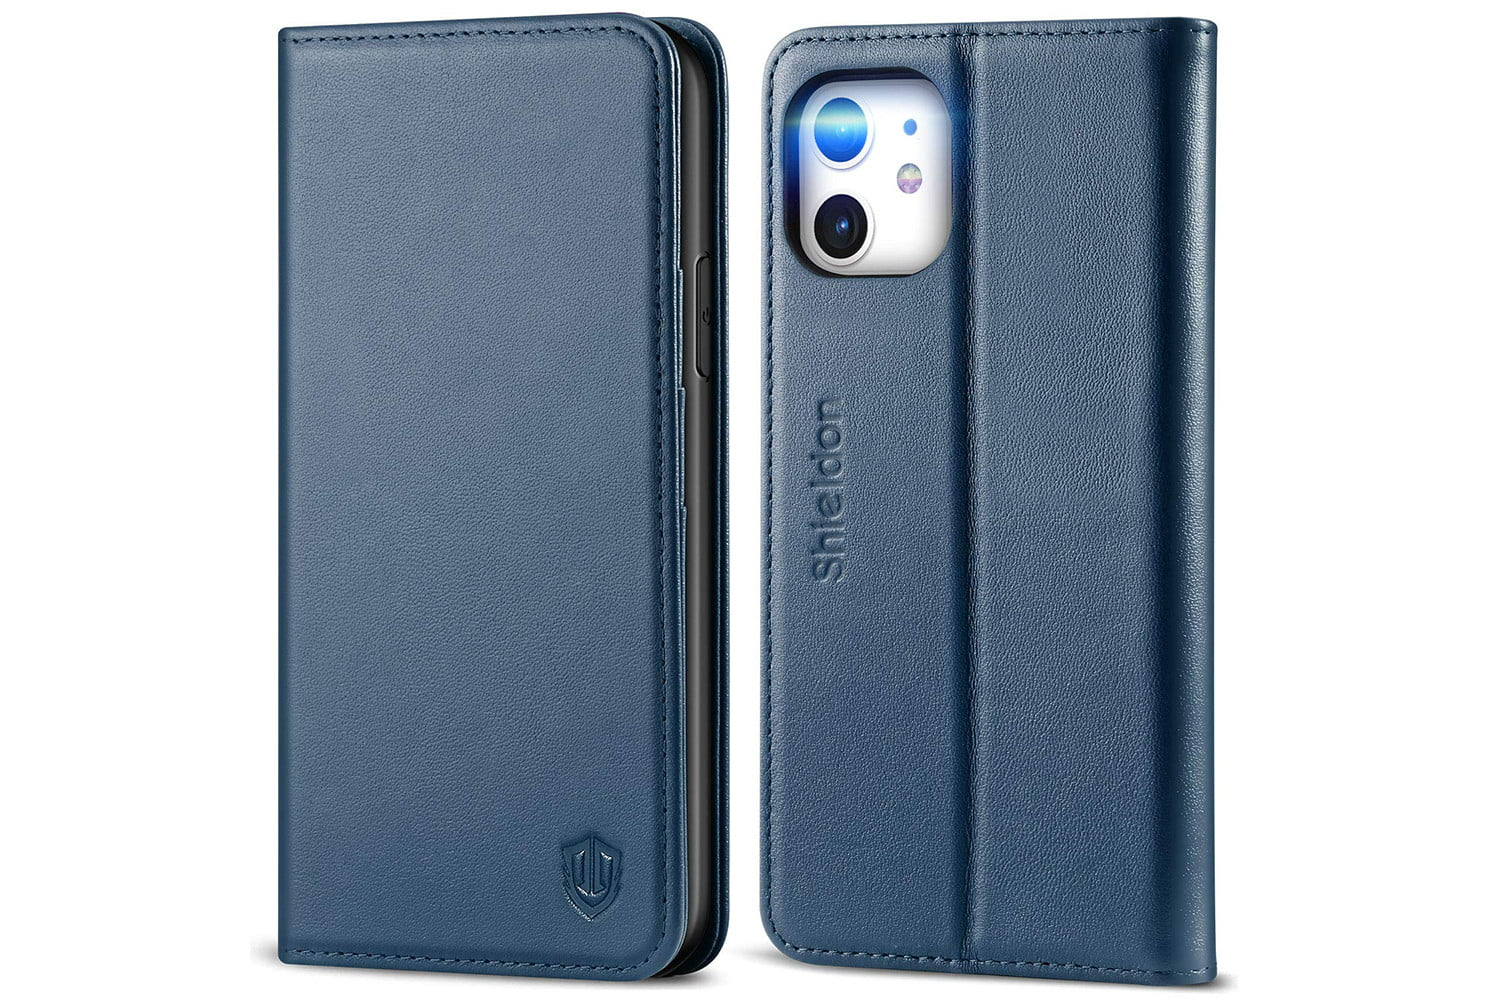 Balsamine Wallet Case for iPhone 11 Leather Cover Compatible with iPhone 11